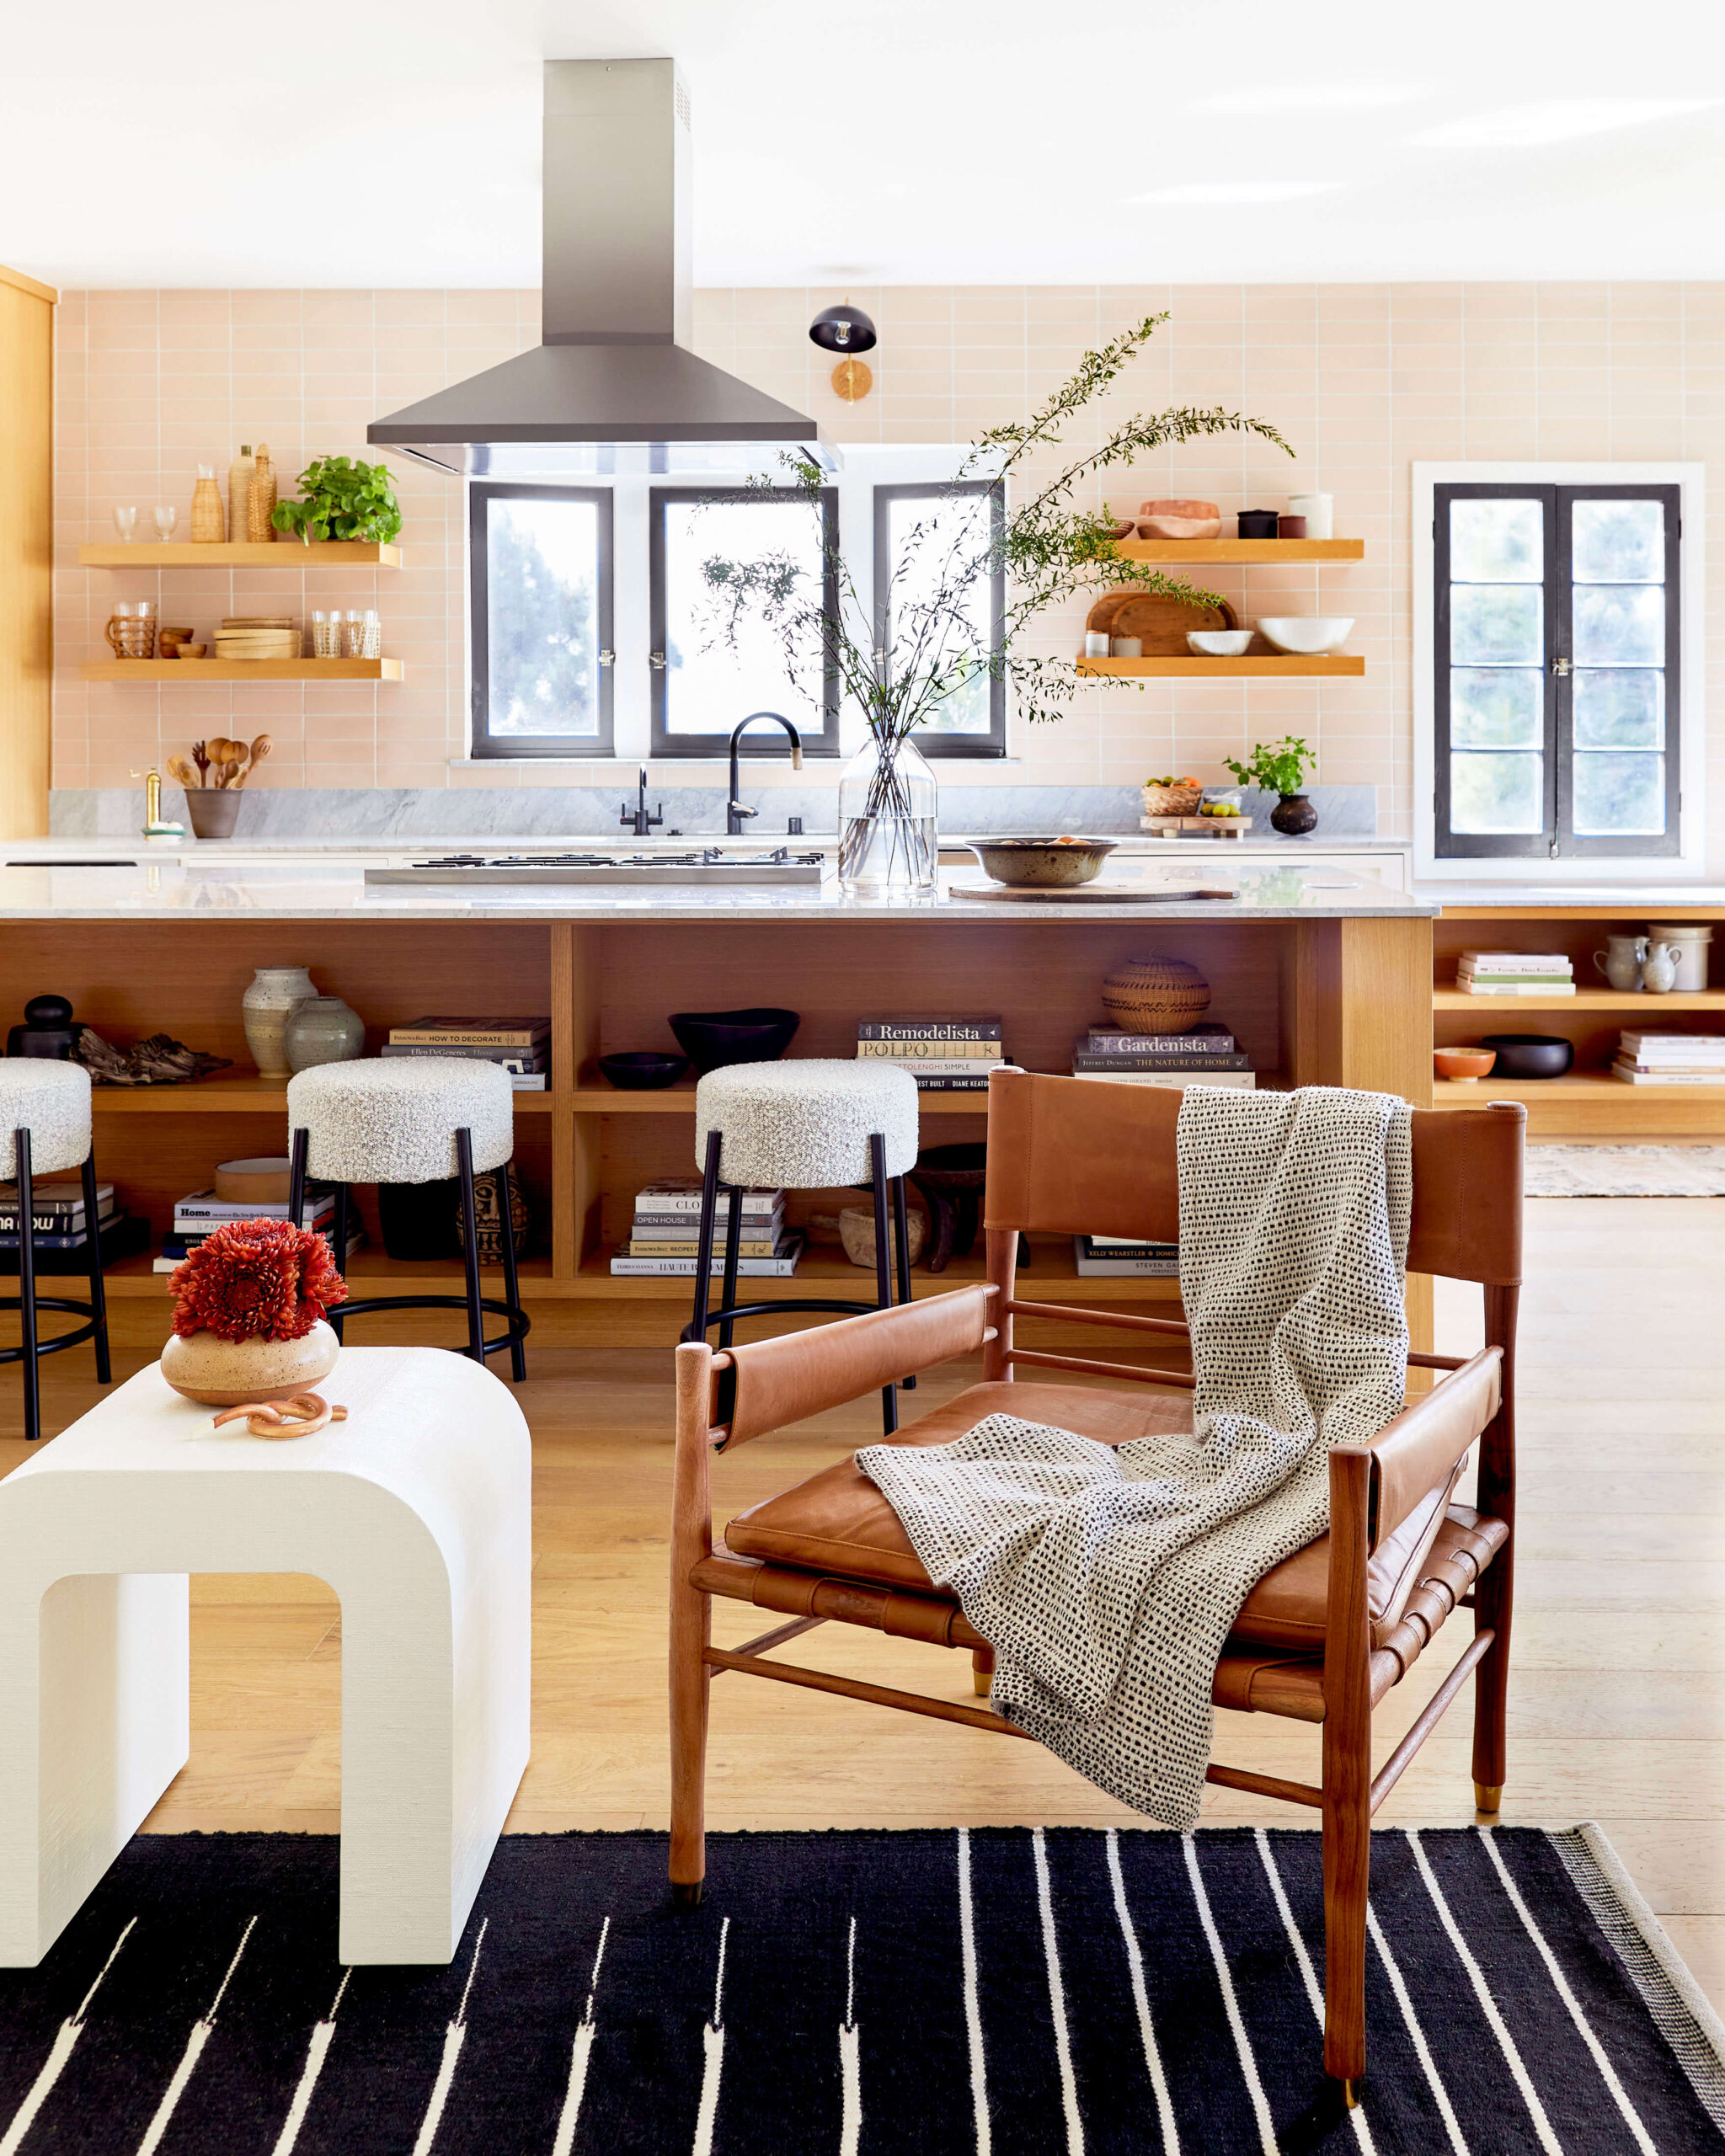 GINNY_MACDONALD_JACLYN_JOHNSON_KITCHEN_LEATHER_CHAIR